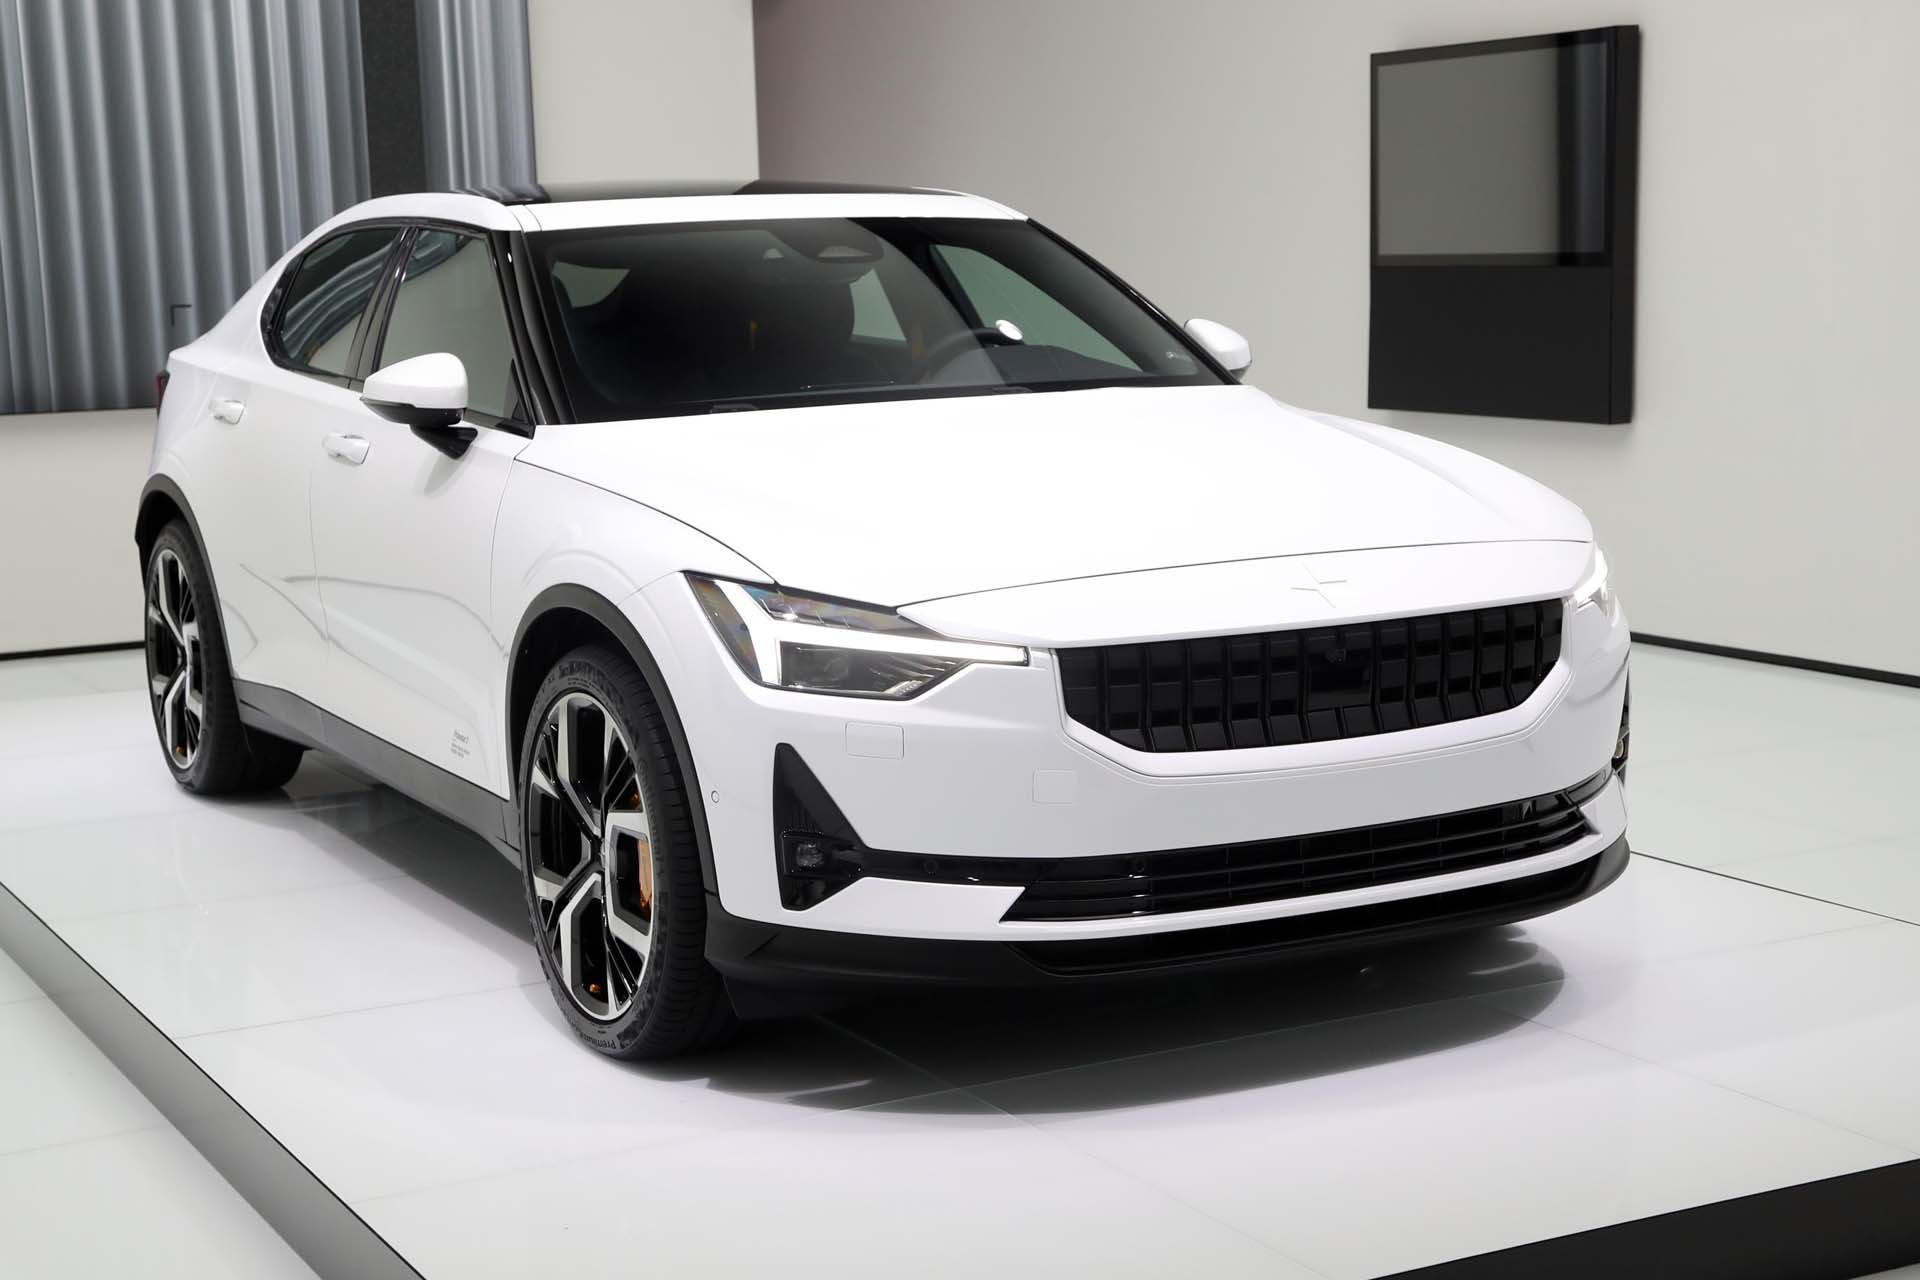 Tesla Model Y Interieur Volvo Taking On Tesla With Chinese Built Polestar 2 Electric Car